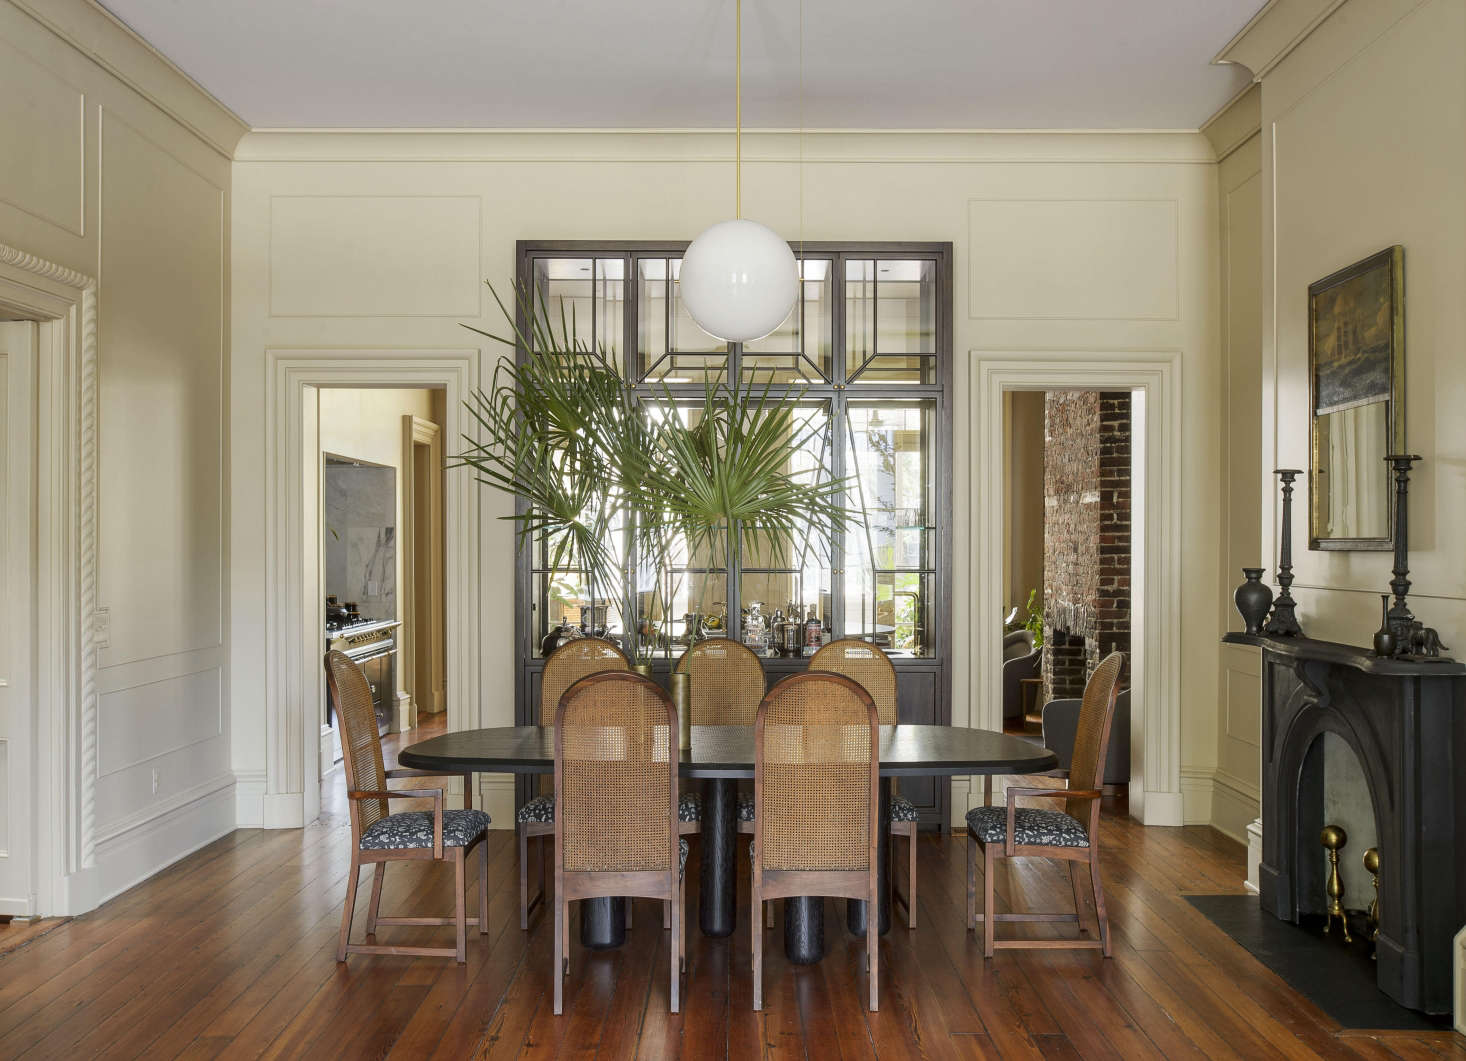 In the dining room, a custom built-inglass vitrine, modeled after an English breakfront cabinet, affords a view into the kitchen. A Workstead Signal Globe Pendant hovers over the dining table.